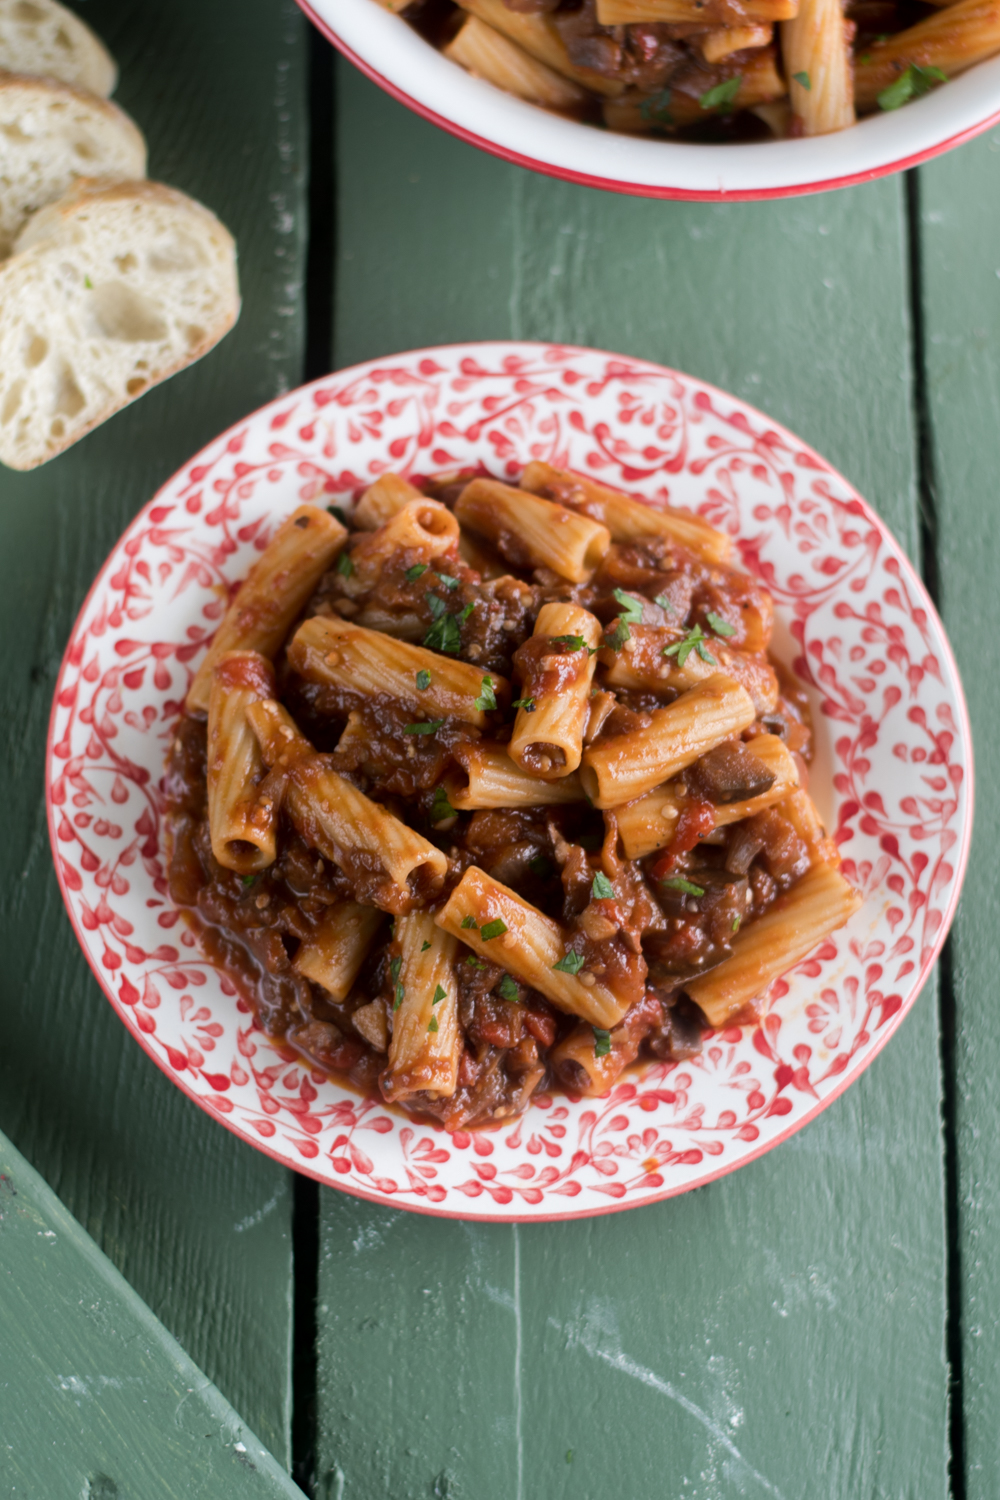 This Eggplant and Mushroom Rigatoni is a flavorful vegan pasta recipe that even omnivores will enjoy!